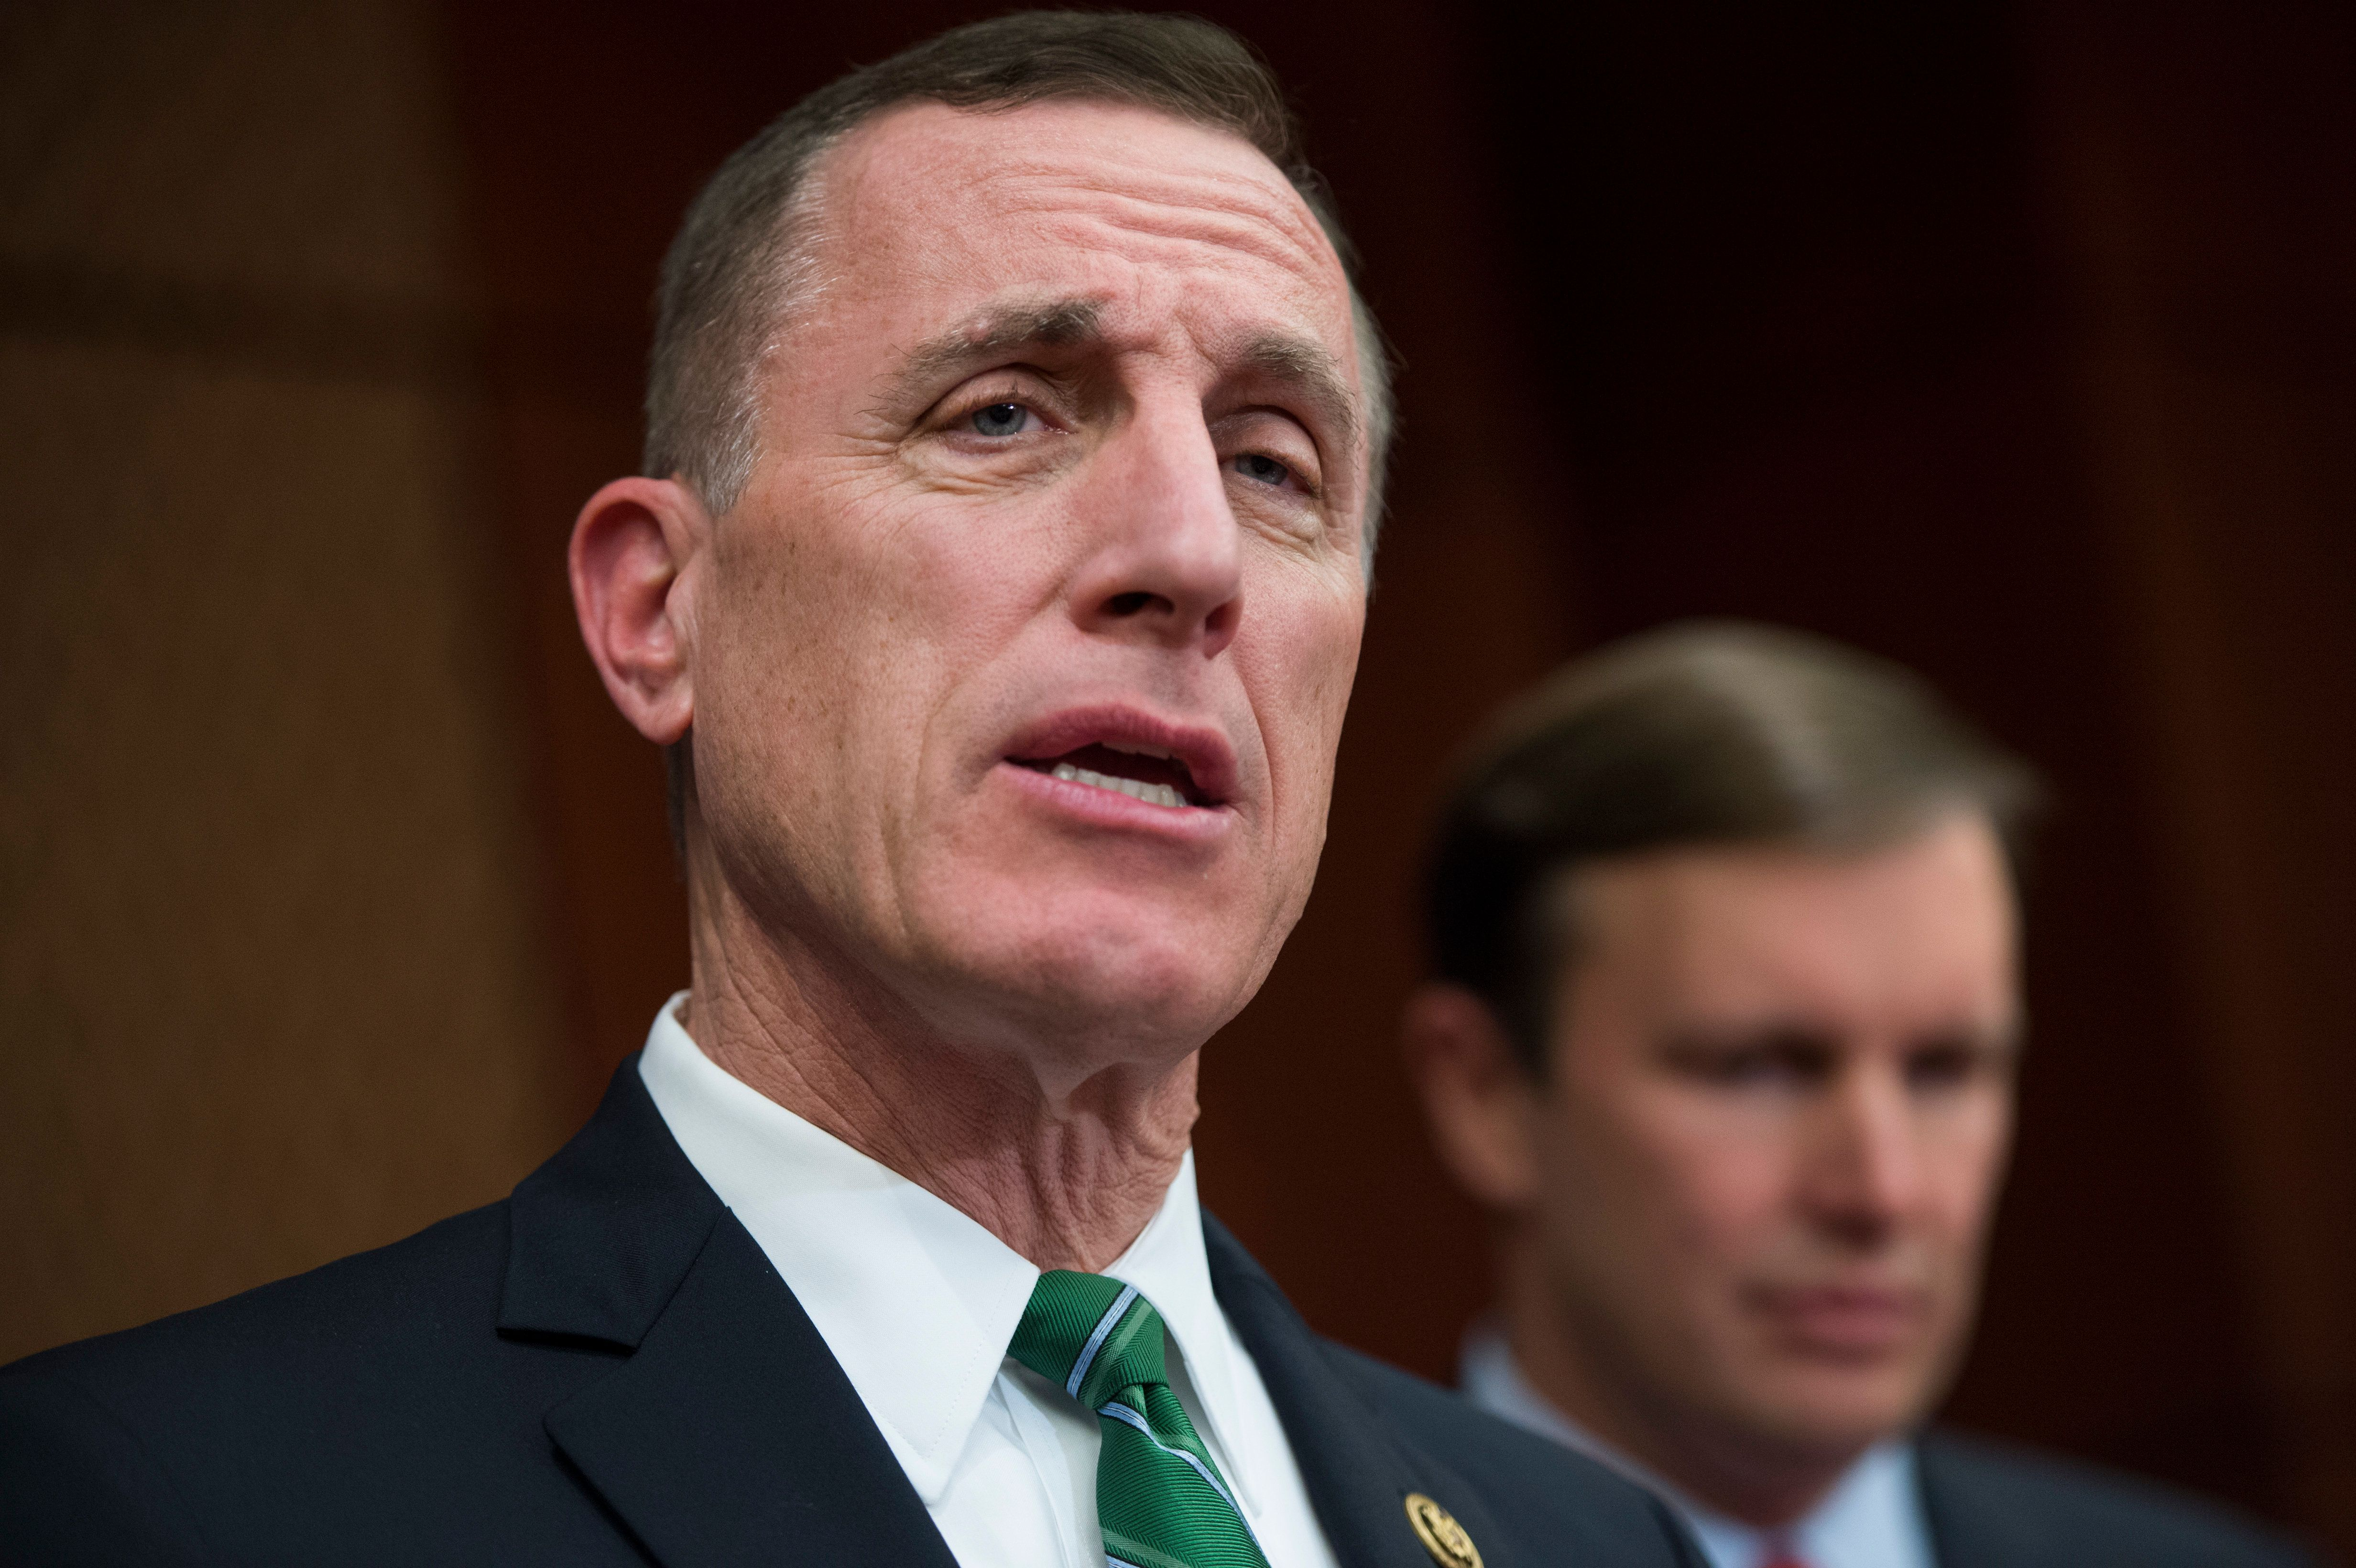 UNITED STATES - DECEMBER 05: Rep. Tim Murphy, R-Pa., left, and Sen. Chris Murphy, D-Conn., attend a news conference in the Capitol Visitor Center to call on the Senate to pass mental health reform legislation, December 05, 2016. (Photo By Tom Williams/CQ Roll Call)